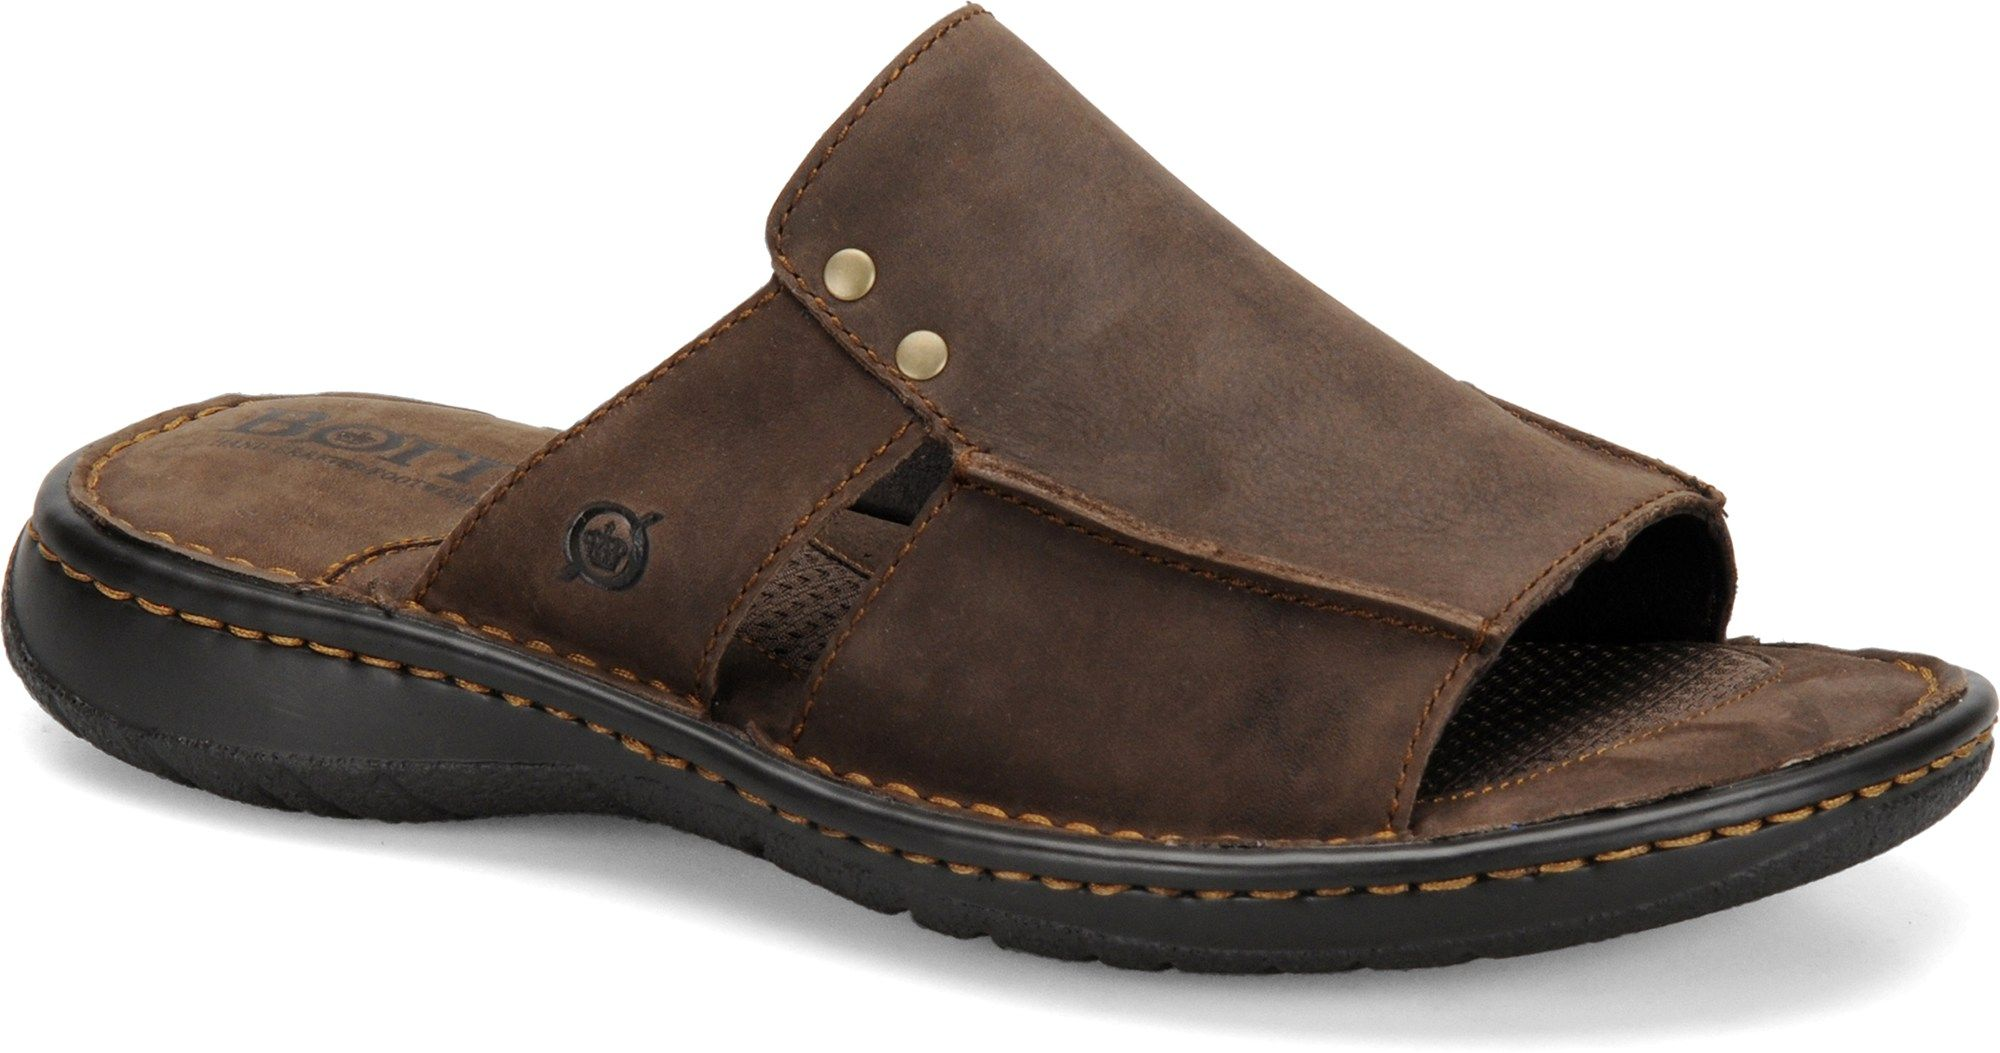 Mens leather sandals, Leather slippers